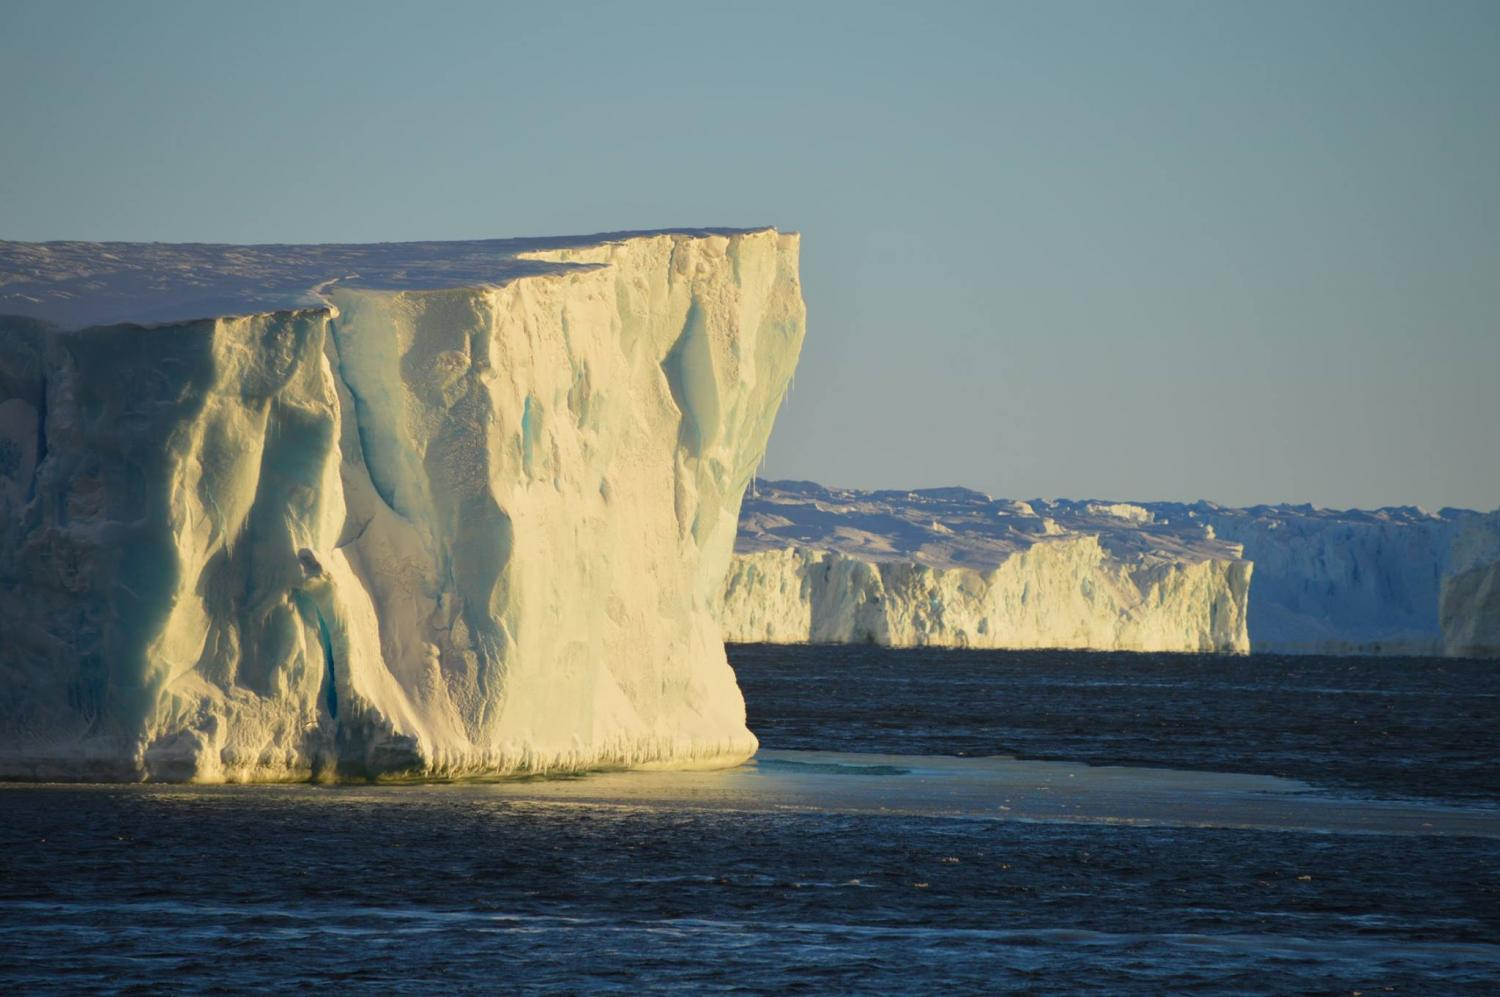 Abu Dhabi's Masdar recently deployed what it says is the first solar power system at an Australian Antarctic station.